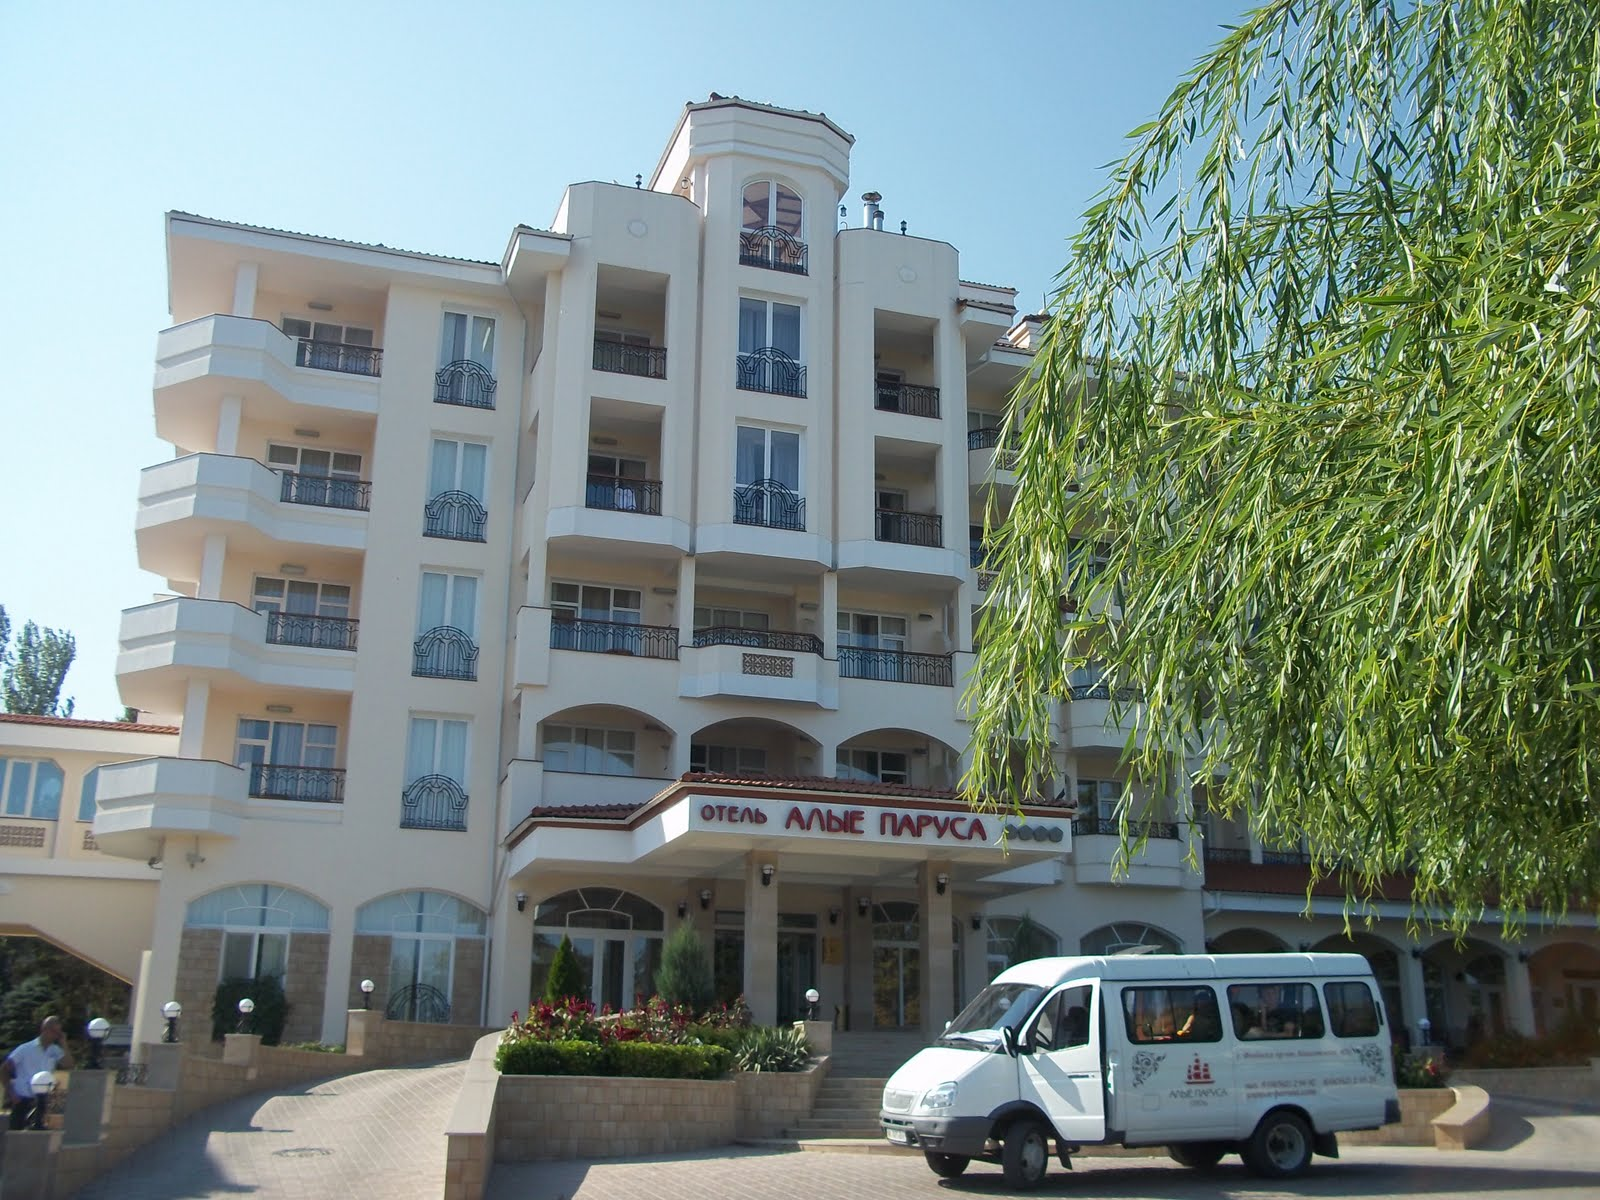 Hotels of Feodosia: a selection of sites